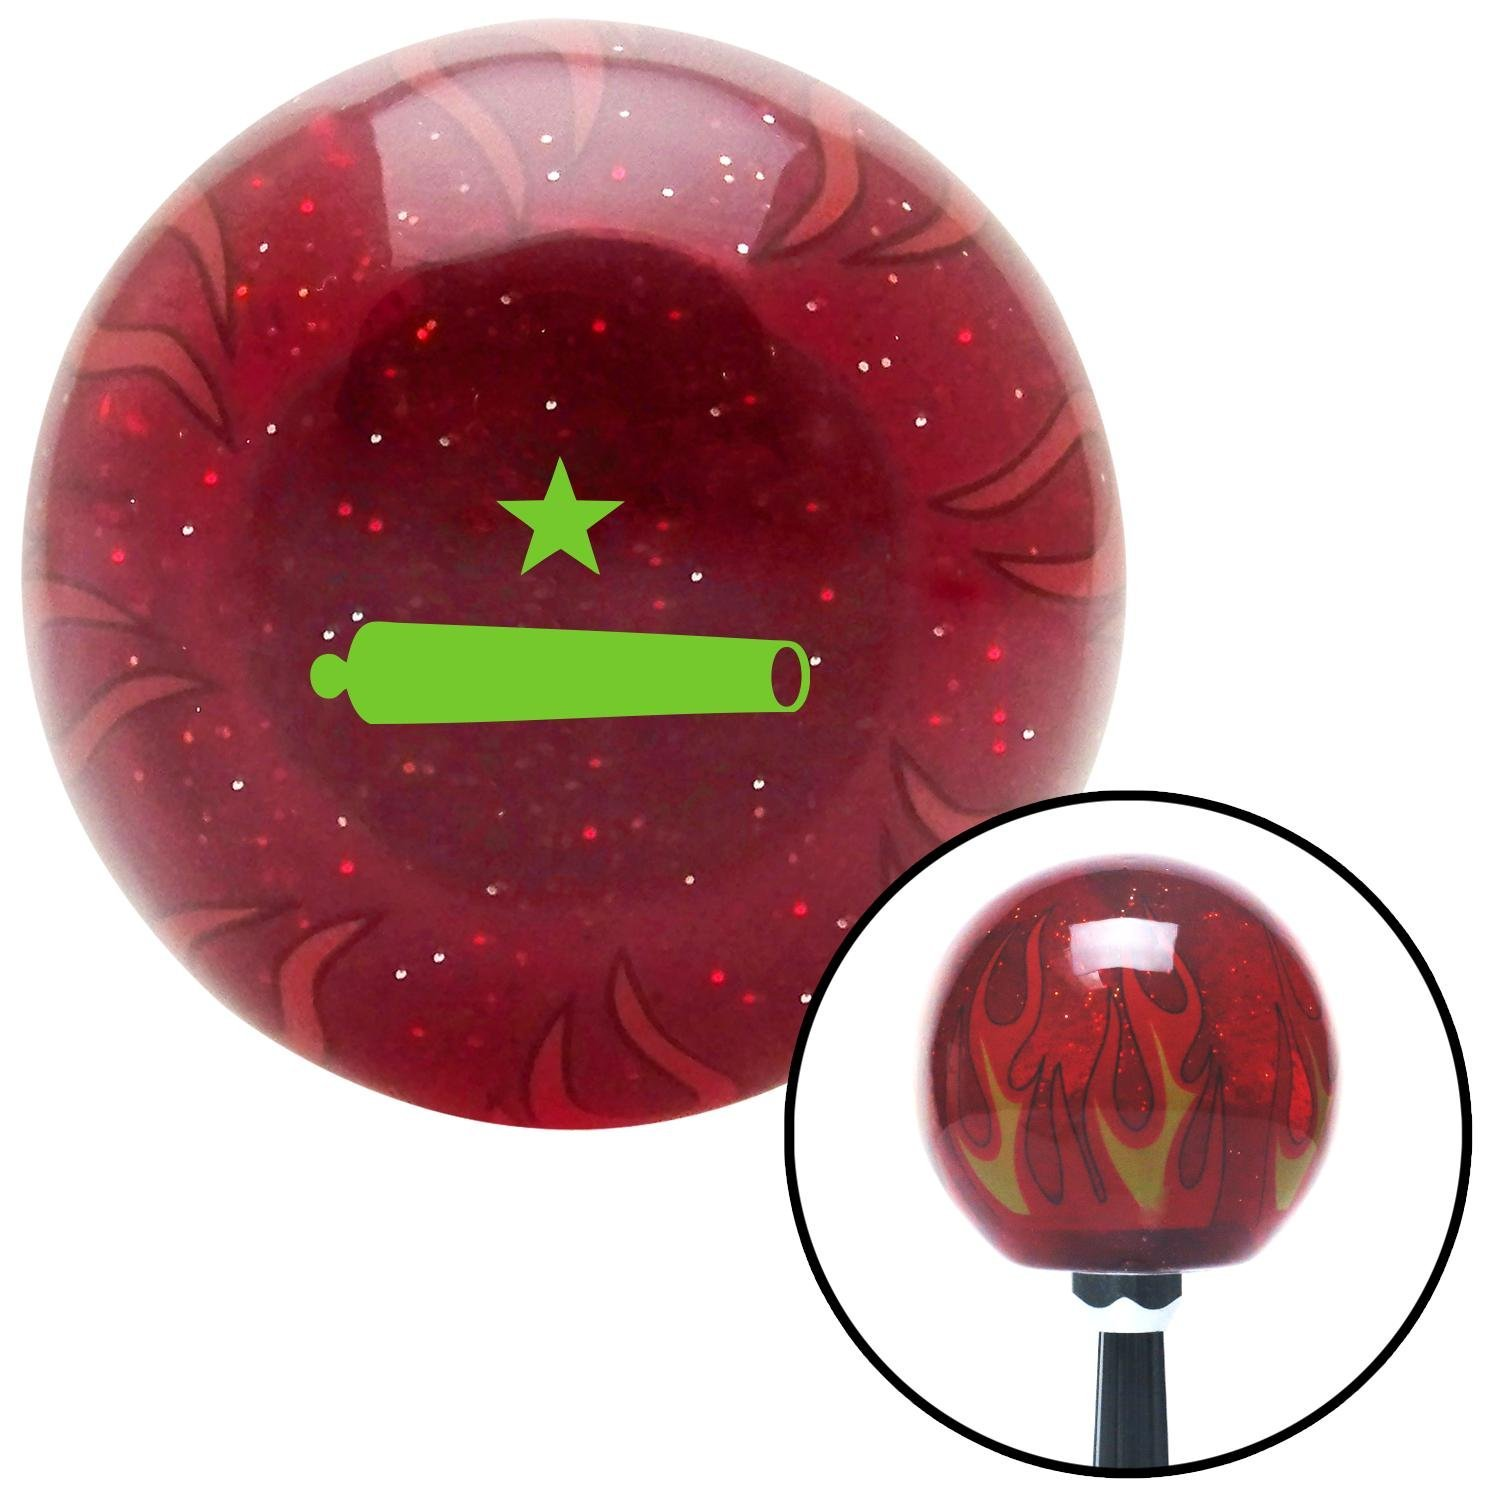 Green Come and Take It American Shifter 242363 Red Flame Metal Flake Shift Knob with M16 x 1.5 Insert